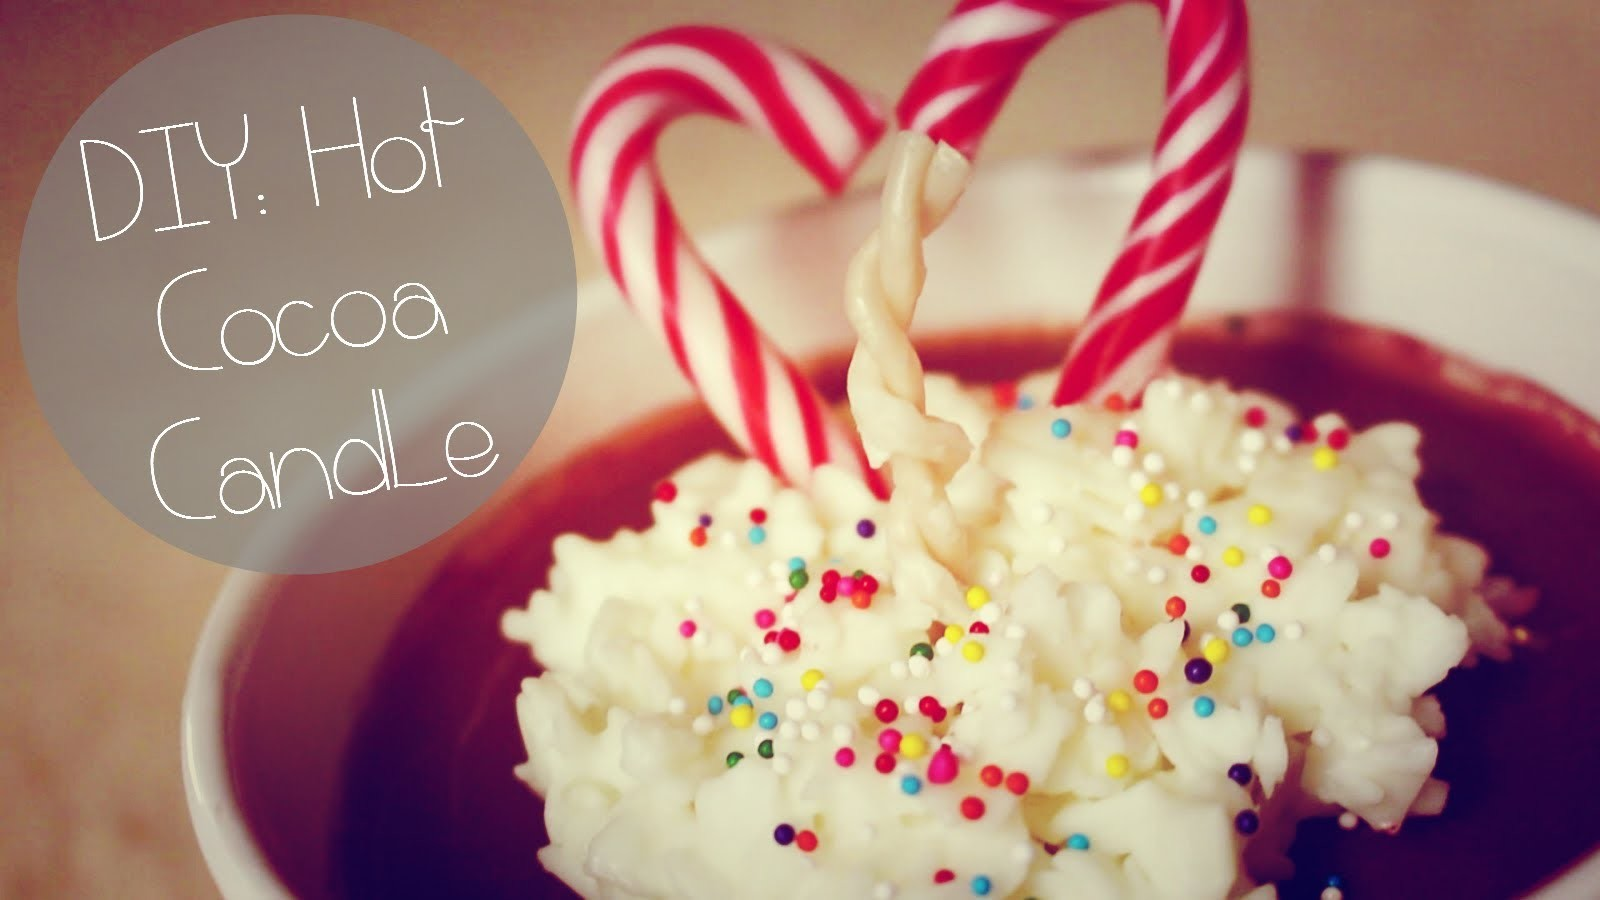 DIY: Hot Cocoa Candle